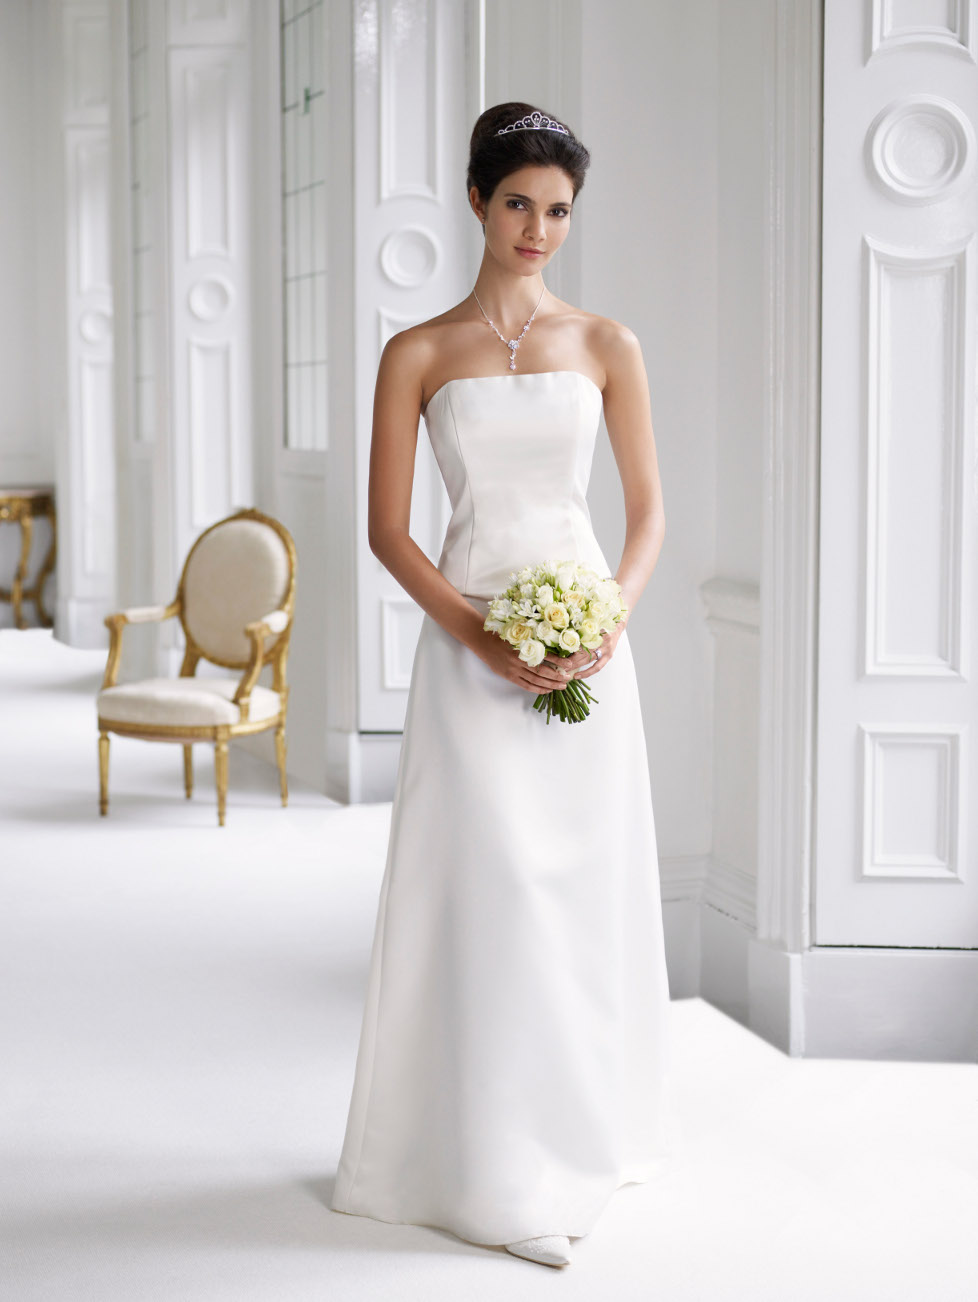 Plain Elegant White Wedding Dress Designs - Wedding Dress